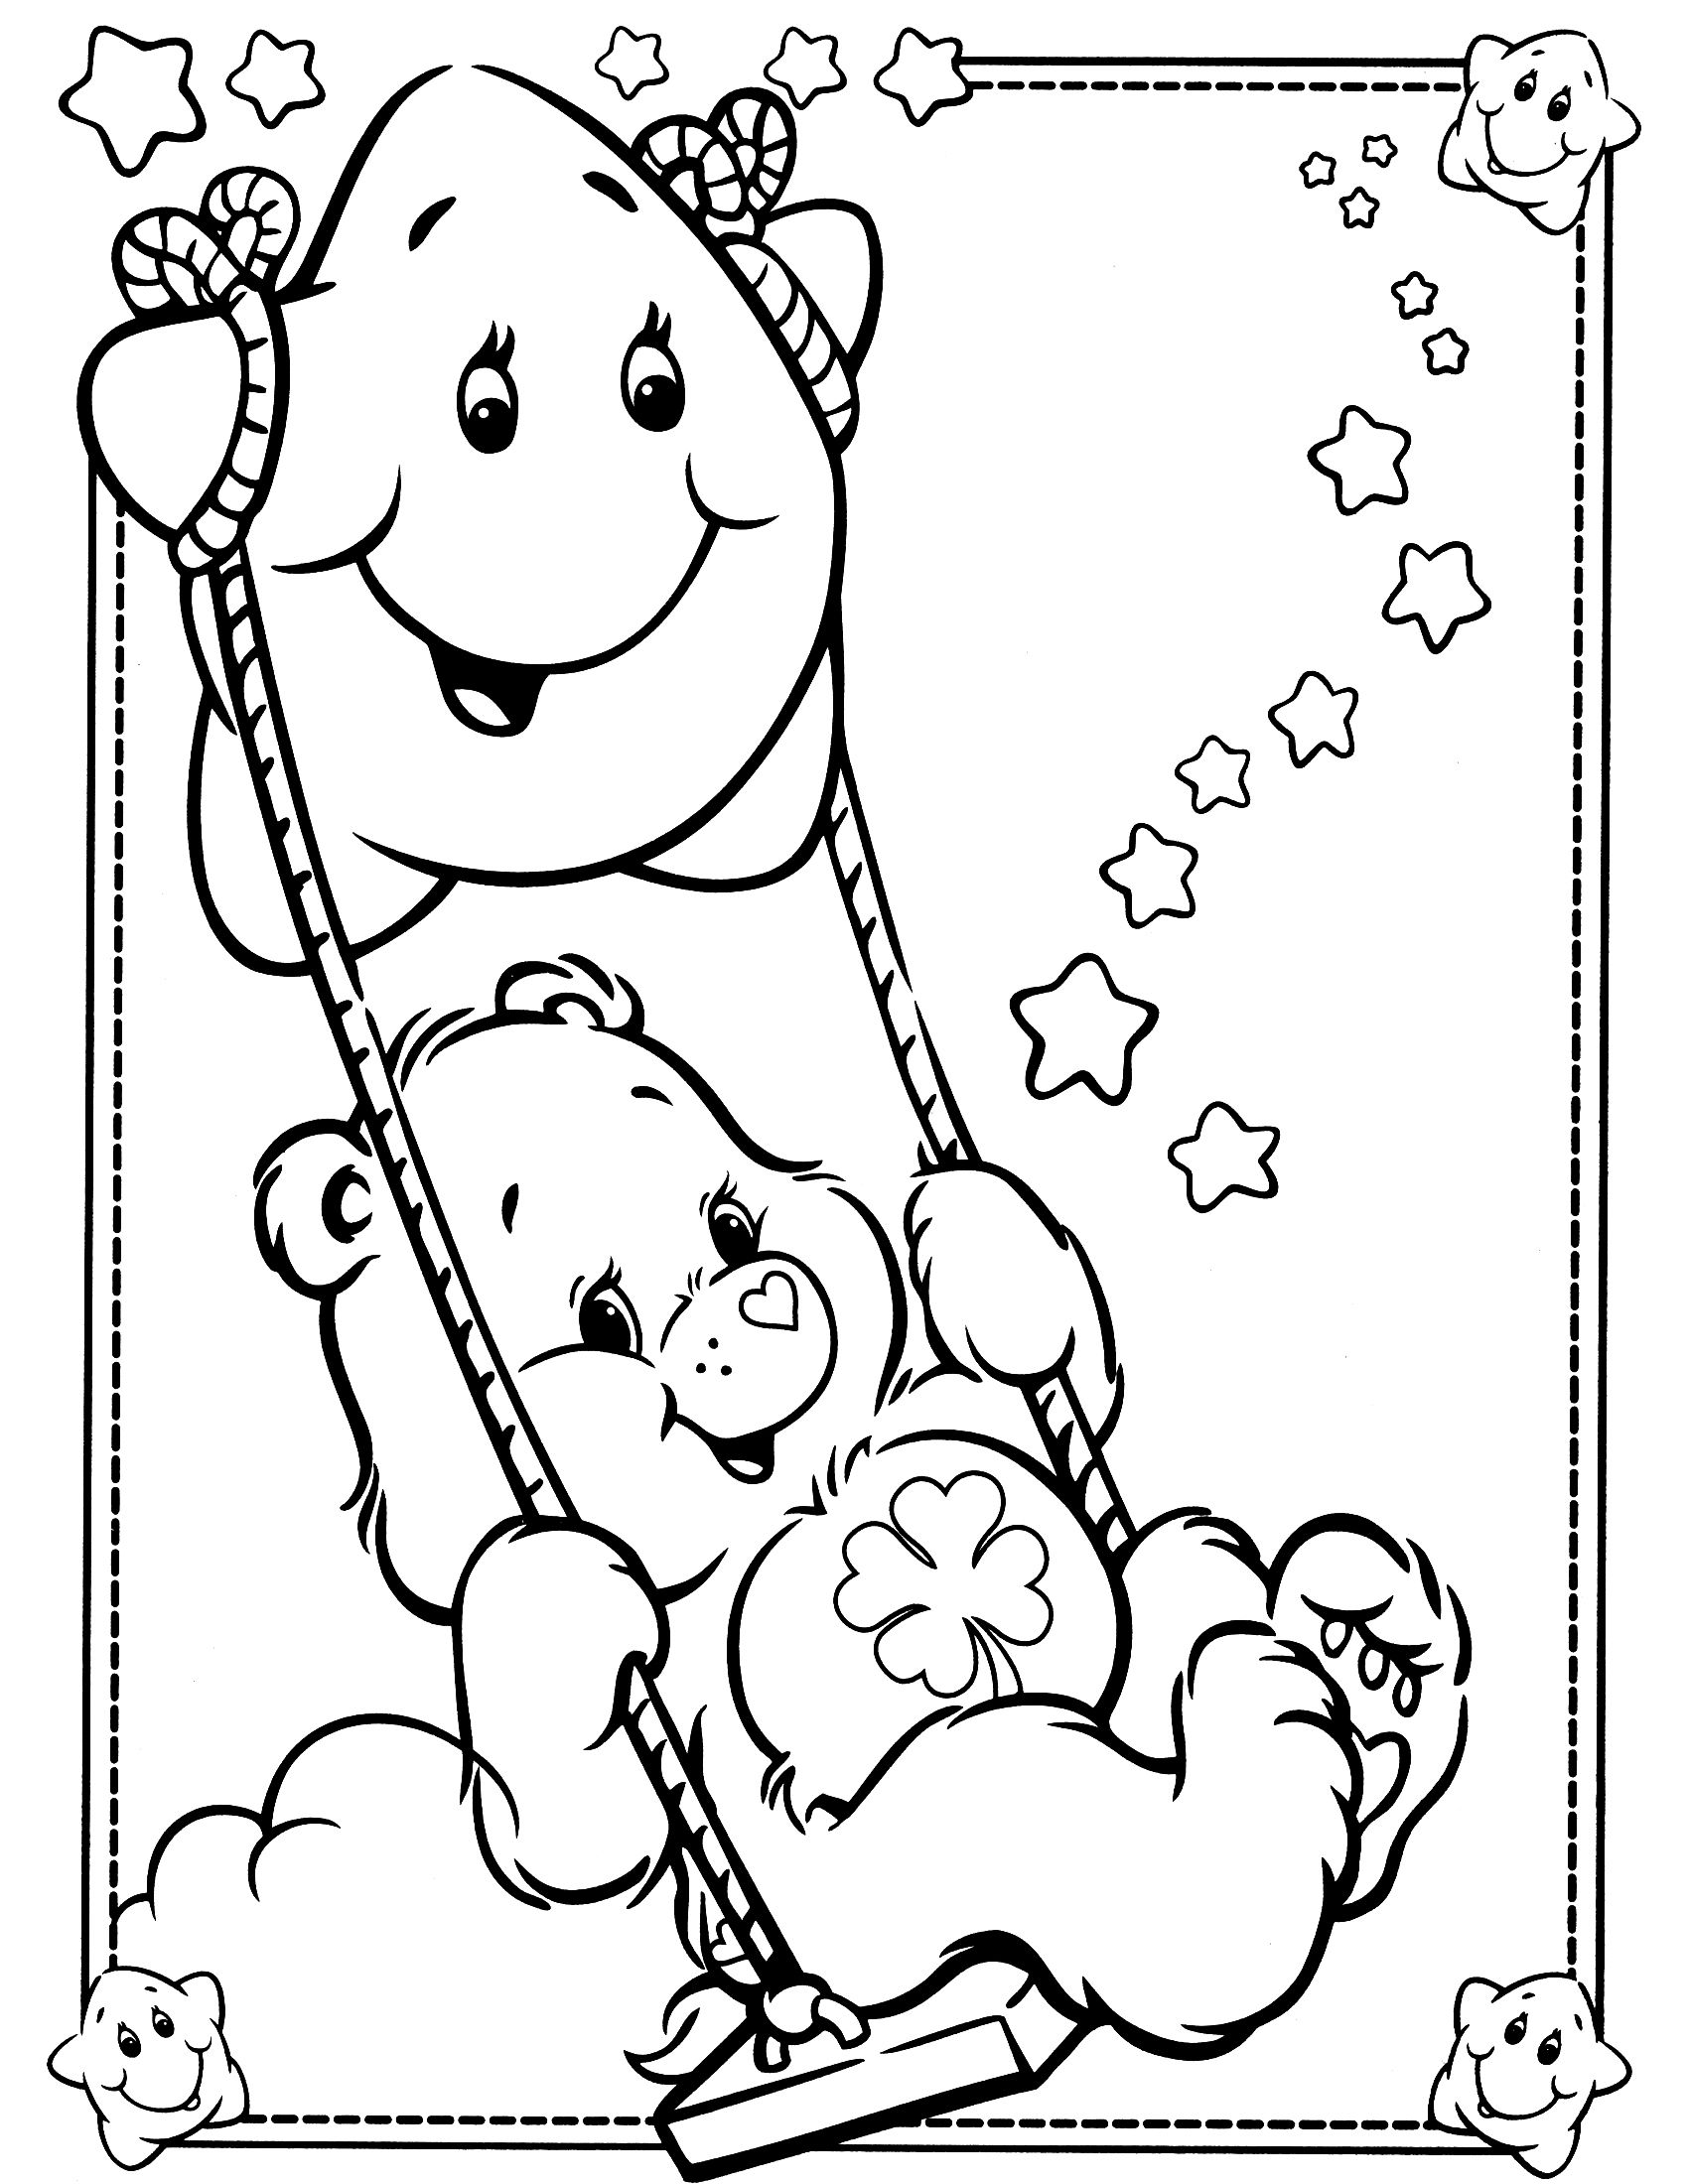 Coloring Pages Coloring Pages Of Care Bears 1000 images about care bears on pinterest coloring famous cartoons and free printable pages